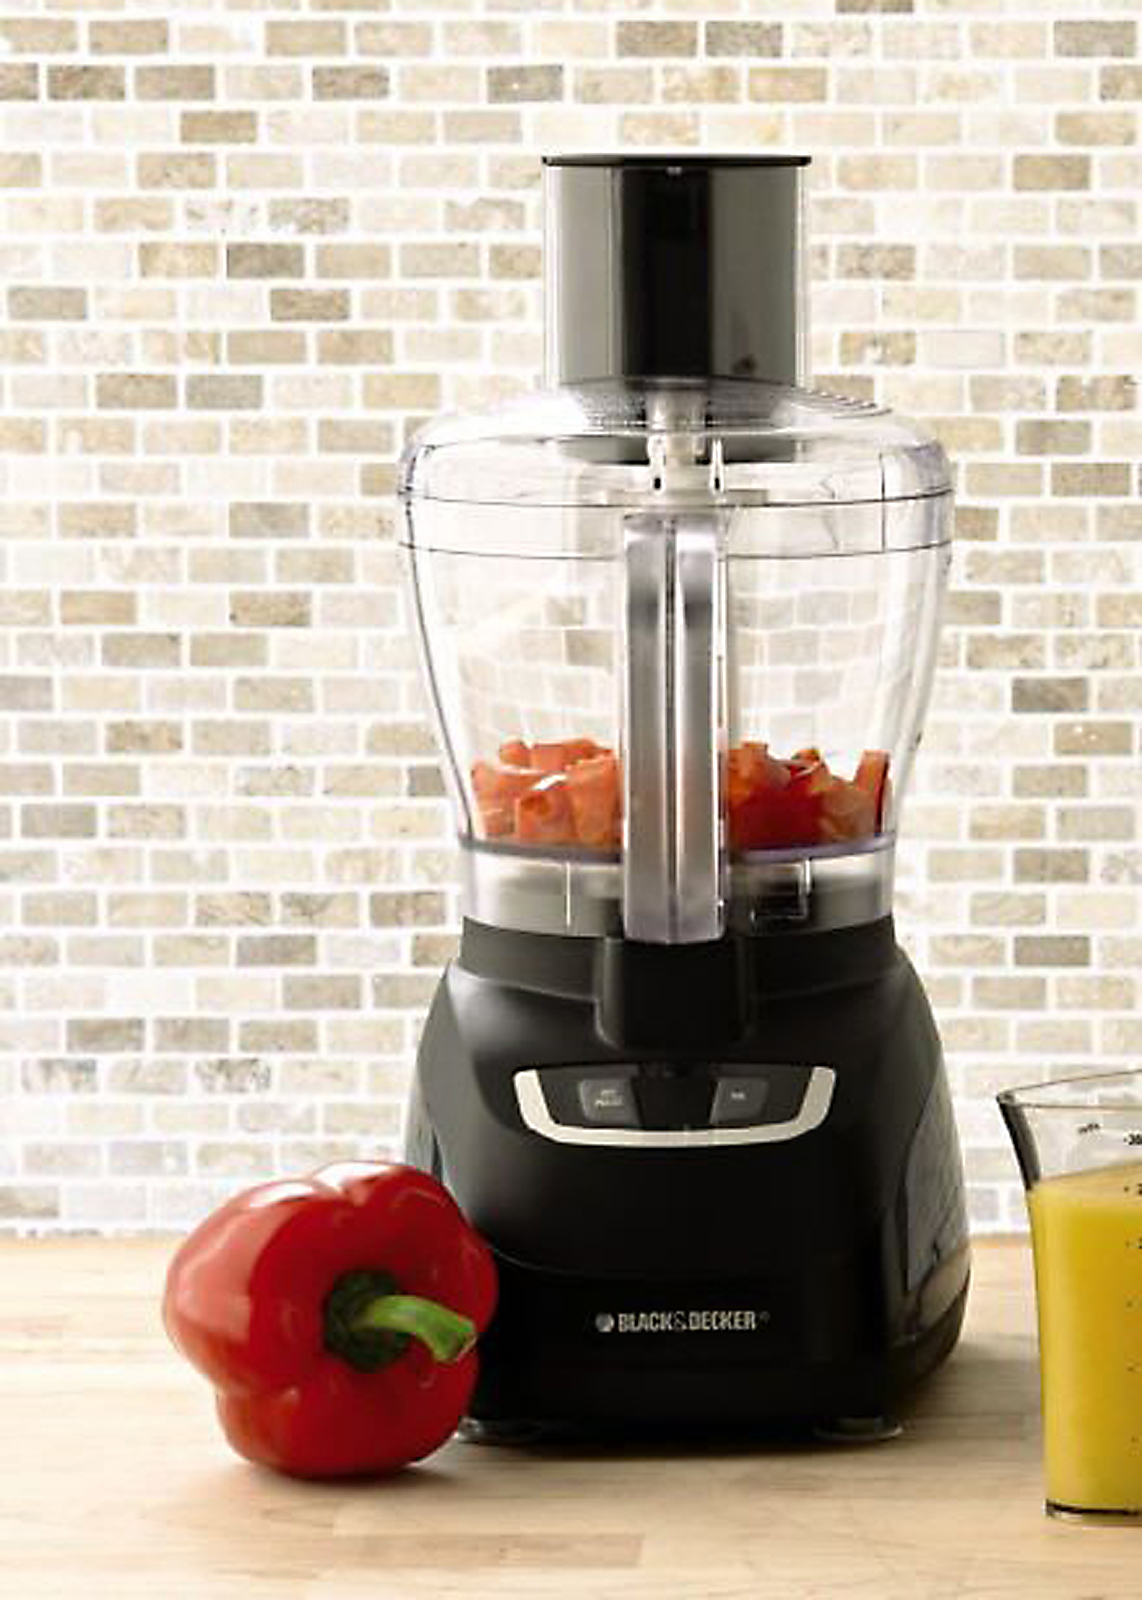 Black & Decker 8 Cup Food Processor